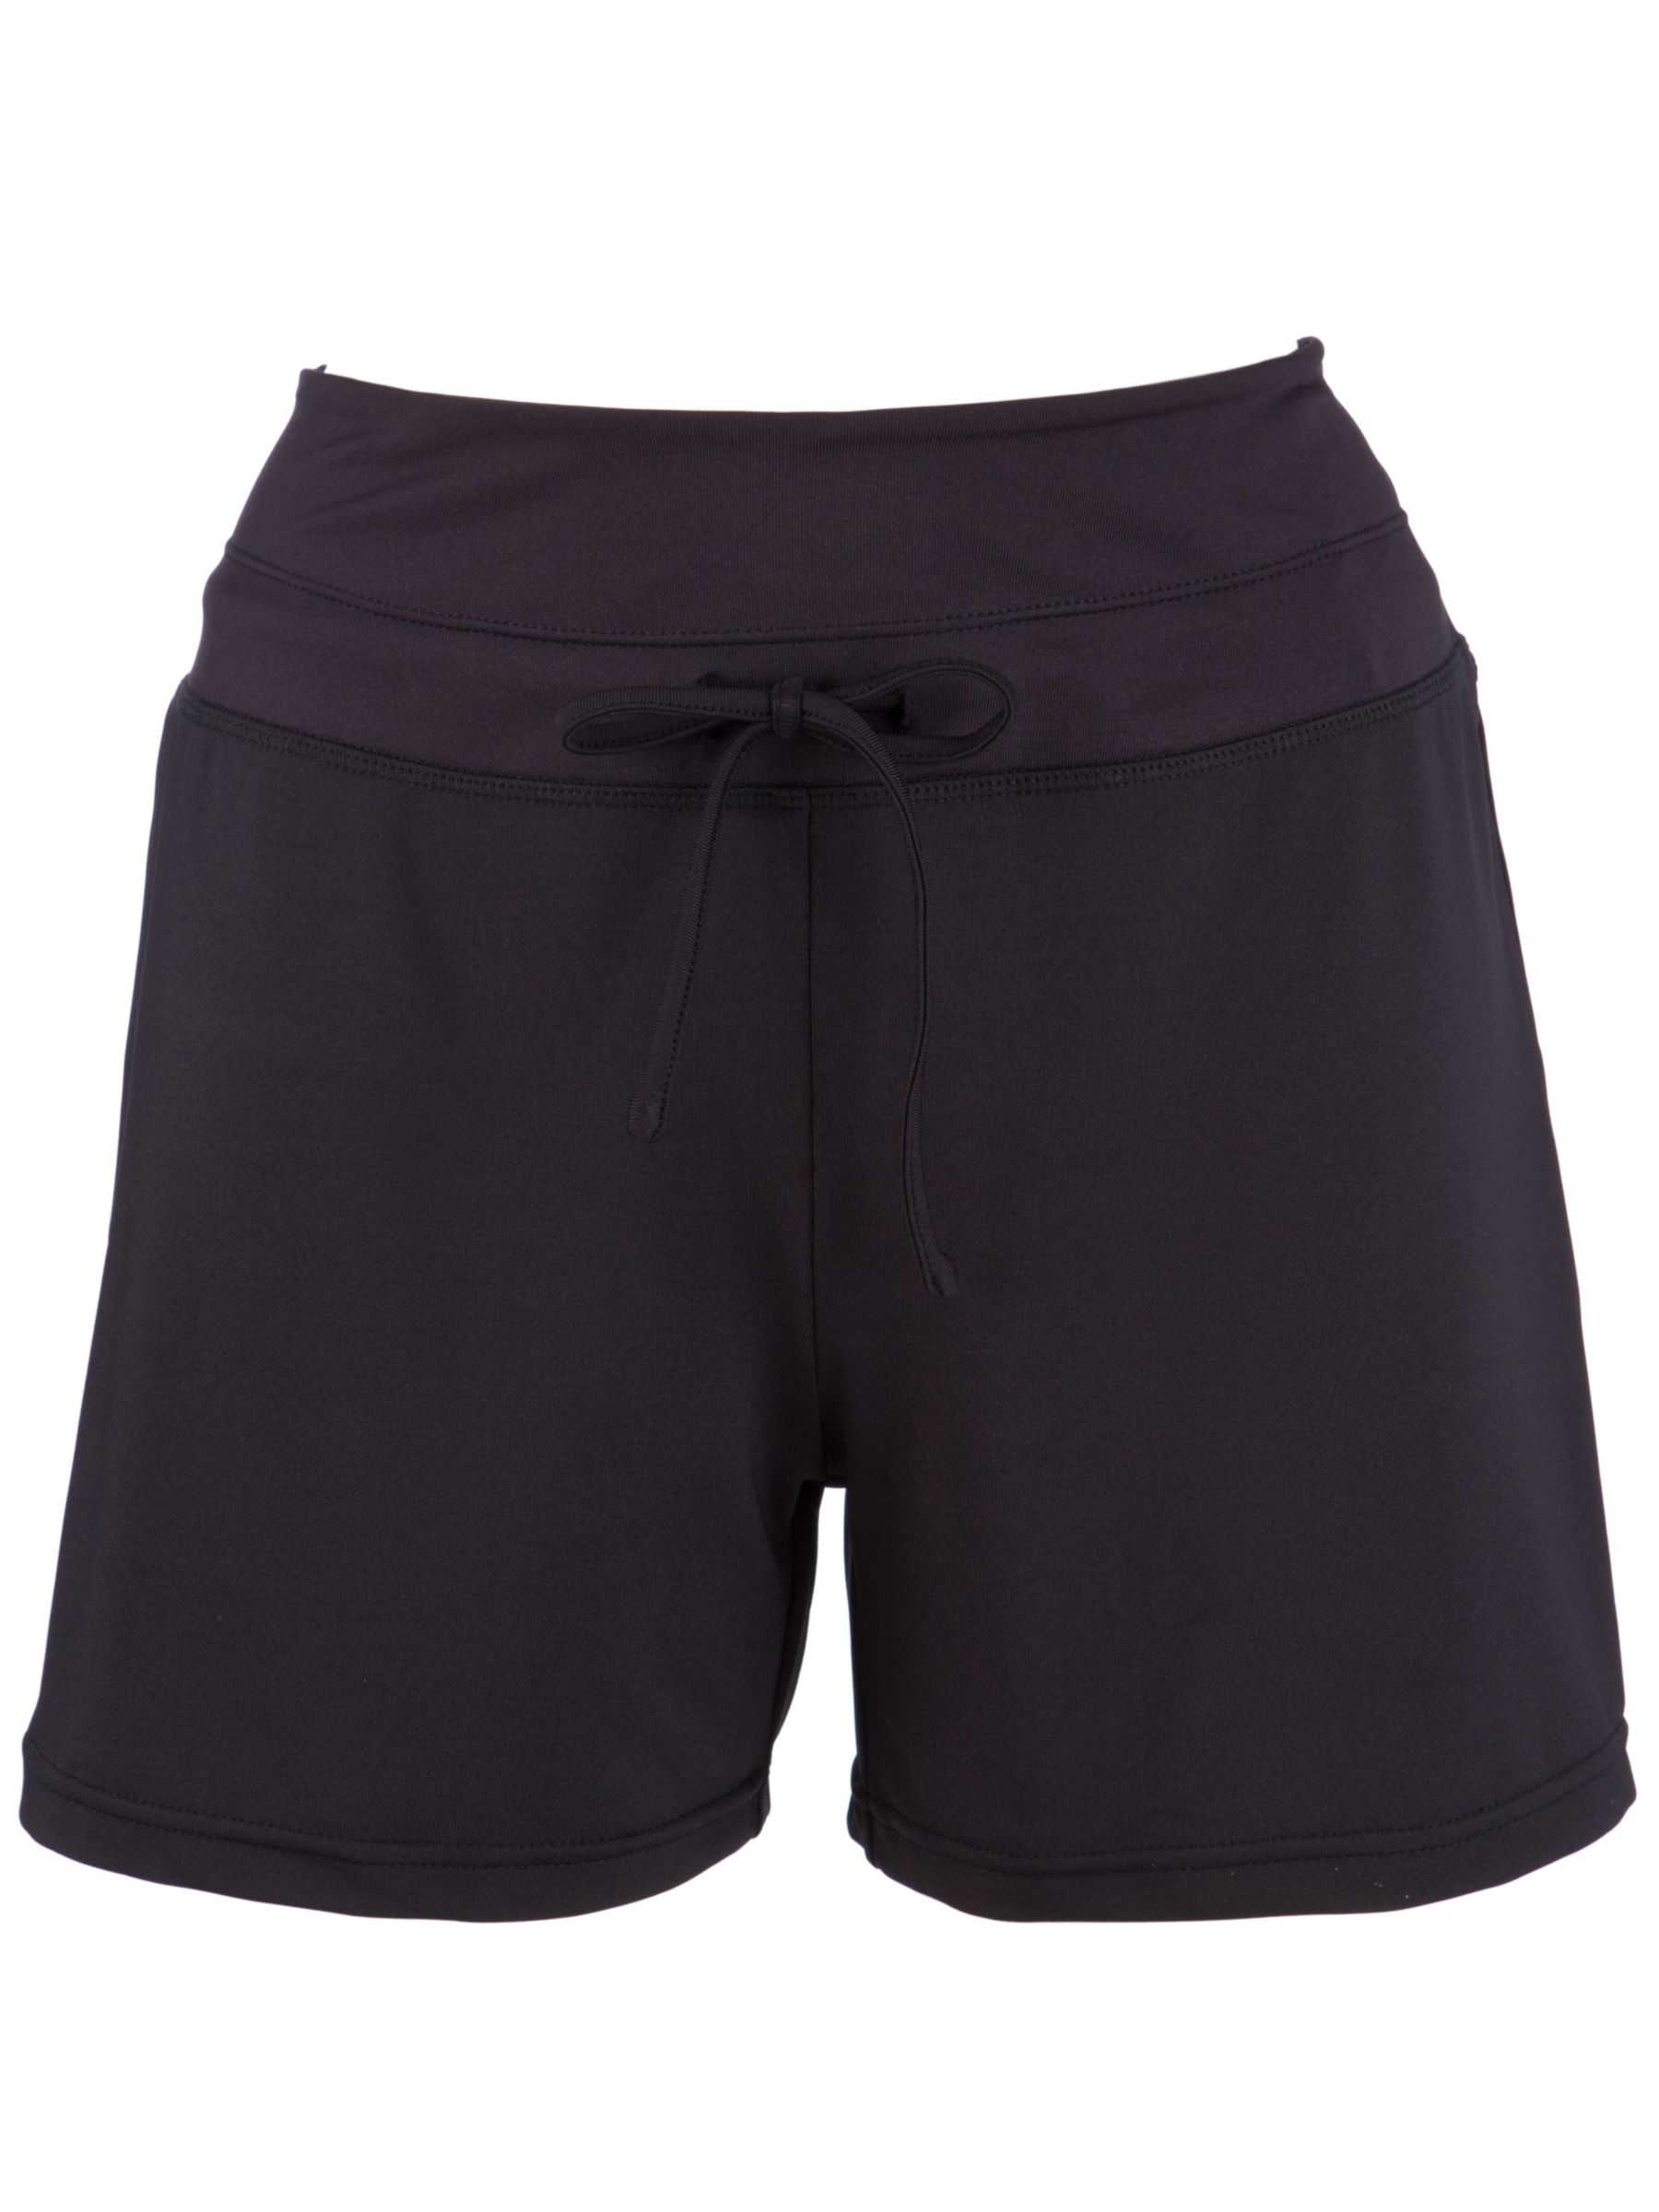 John Lewis Active Shorts, Black